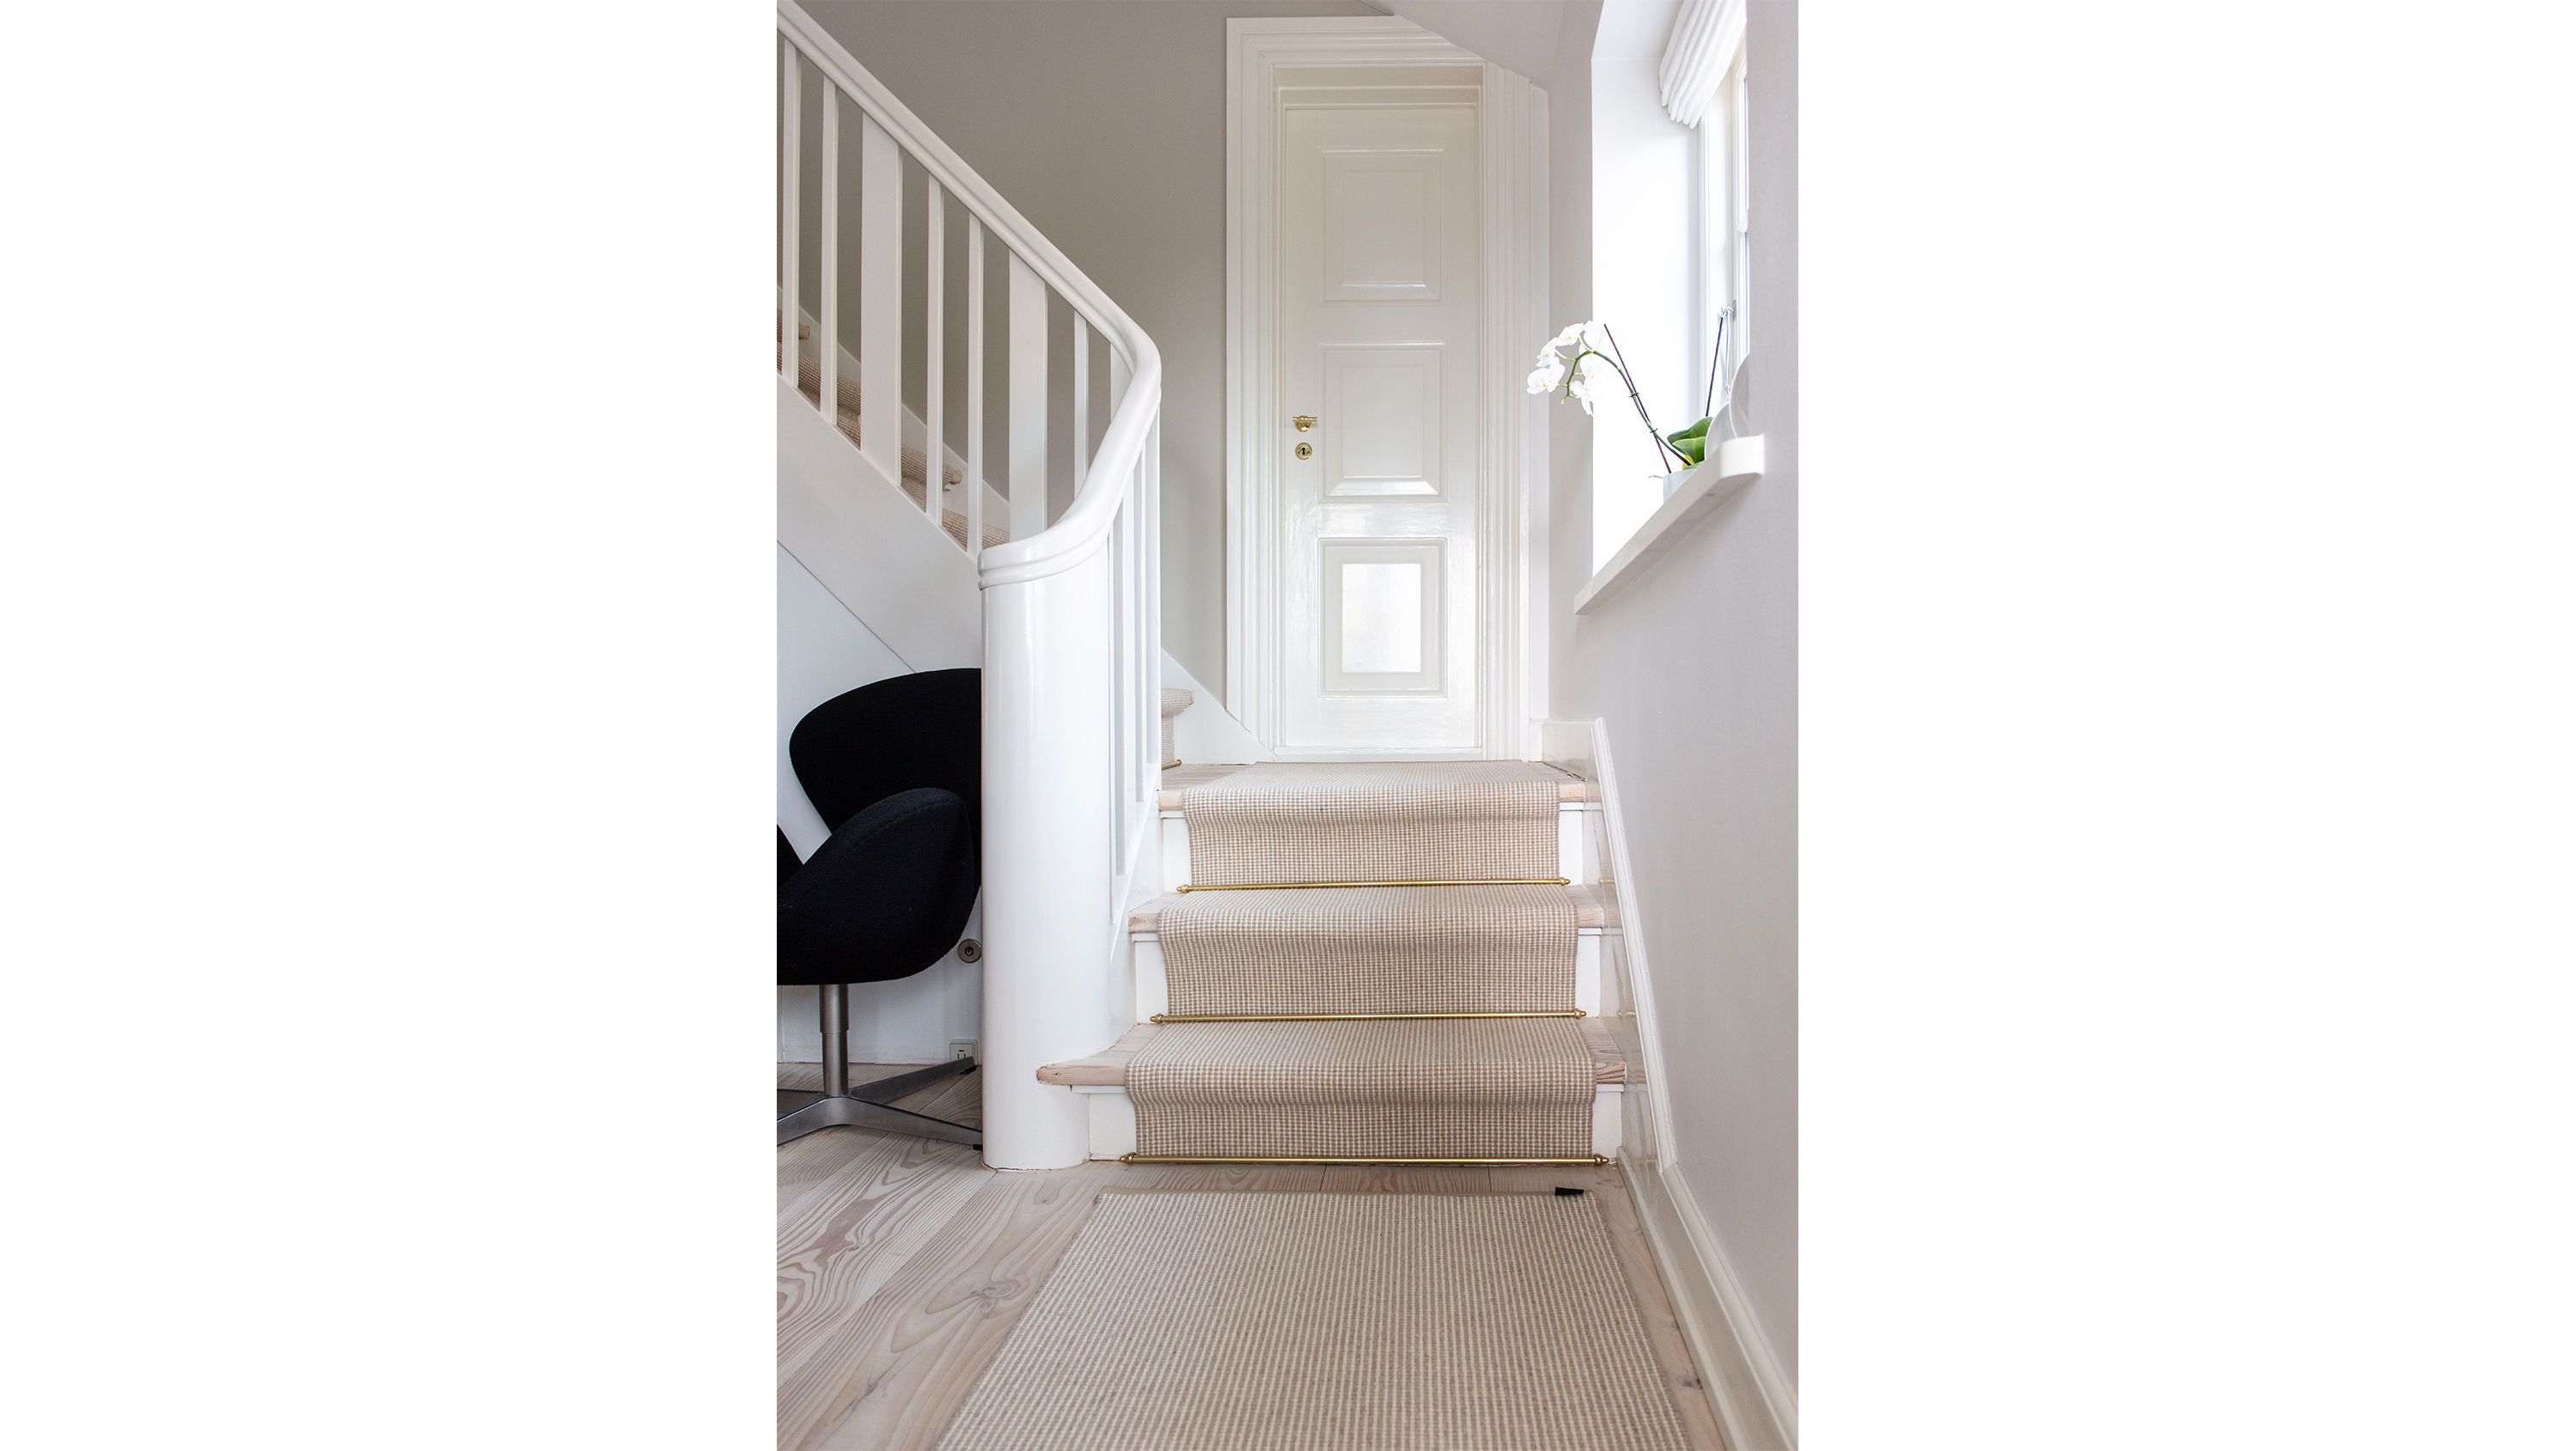 A Sisal Runner On The Stairs Protects The Stairs And Is Elegant